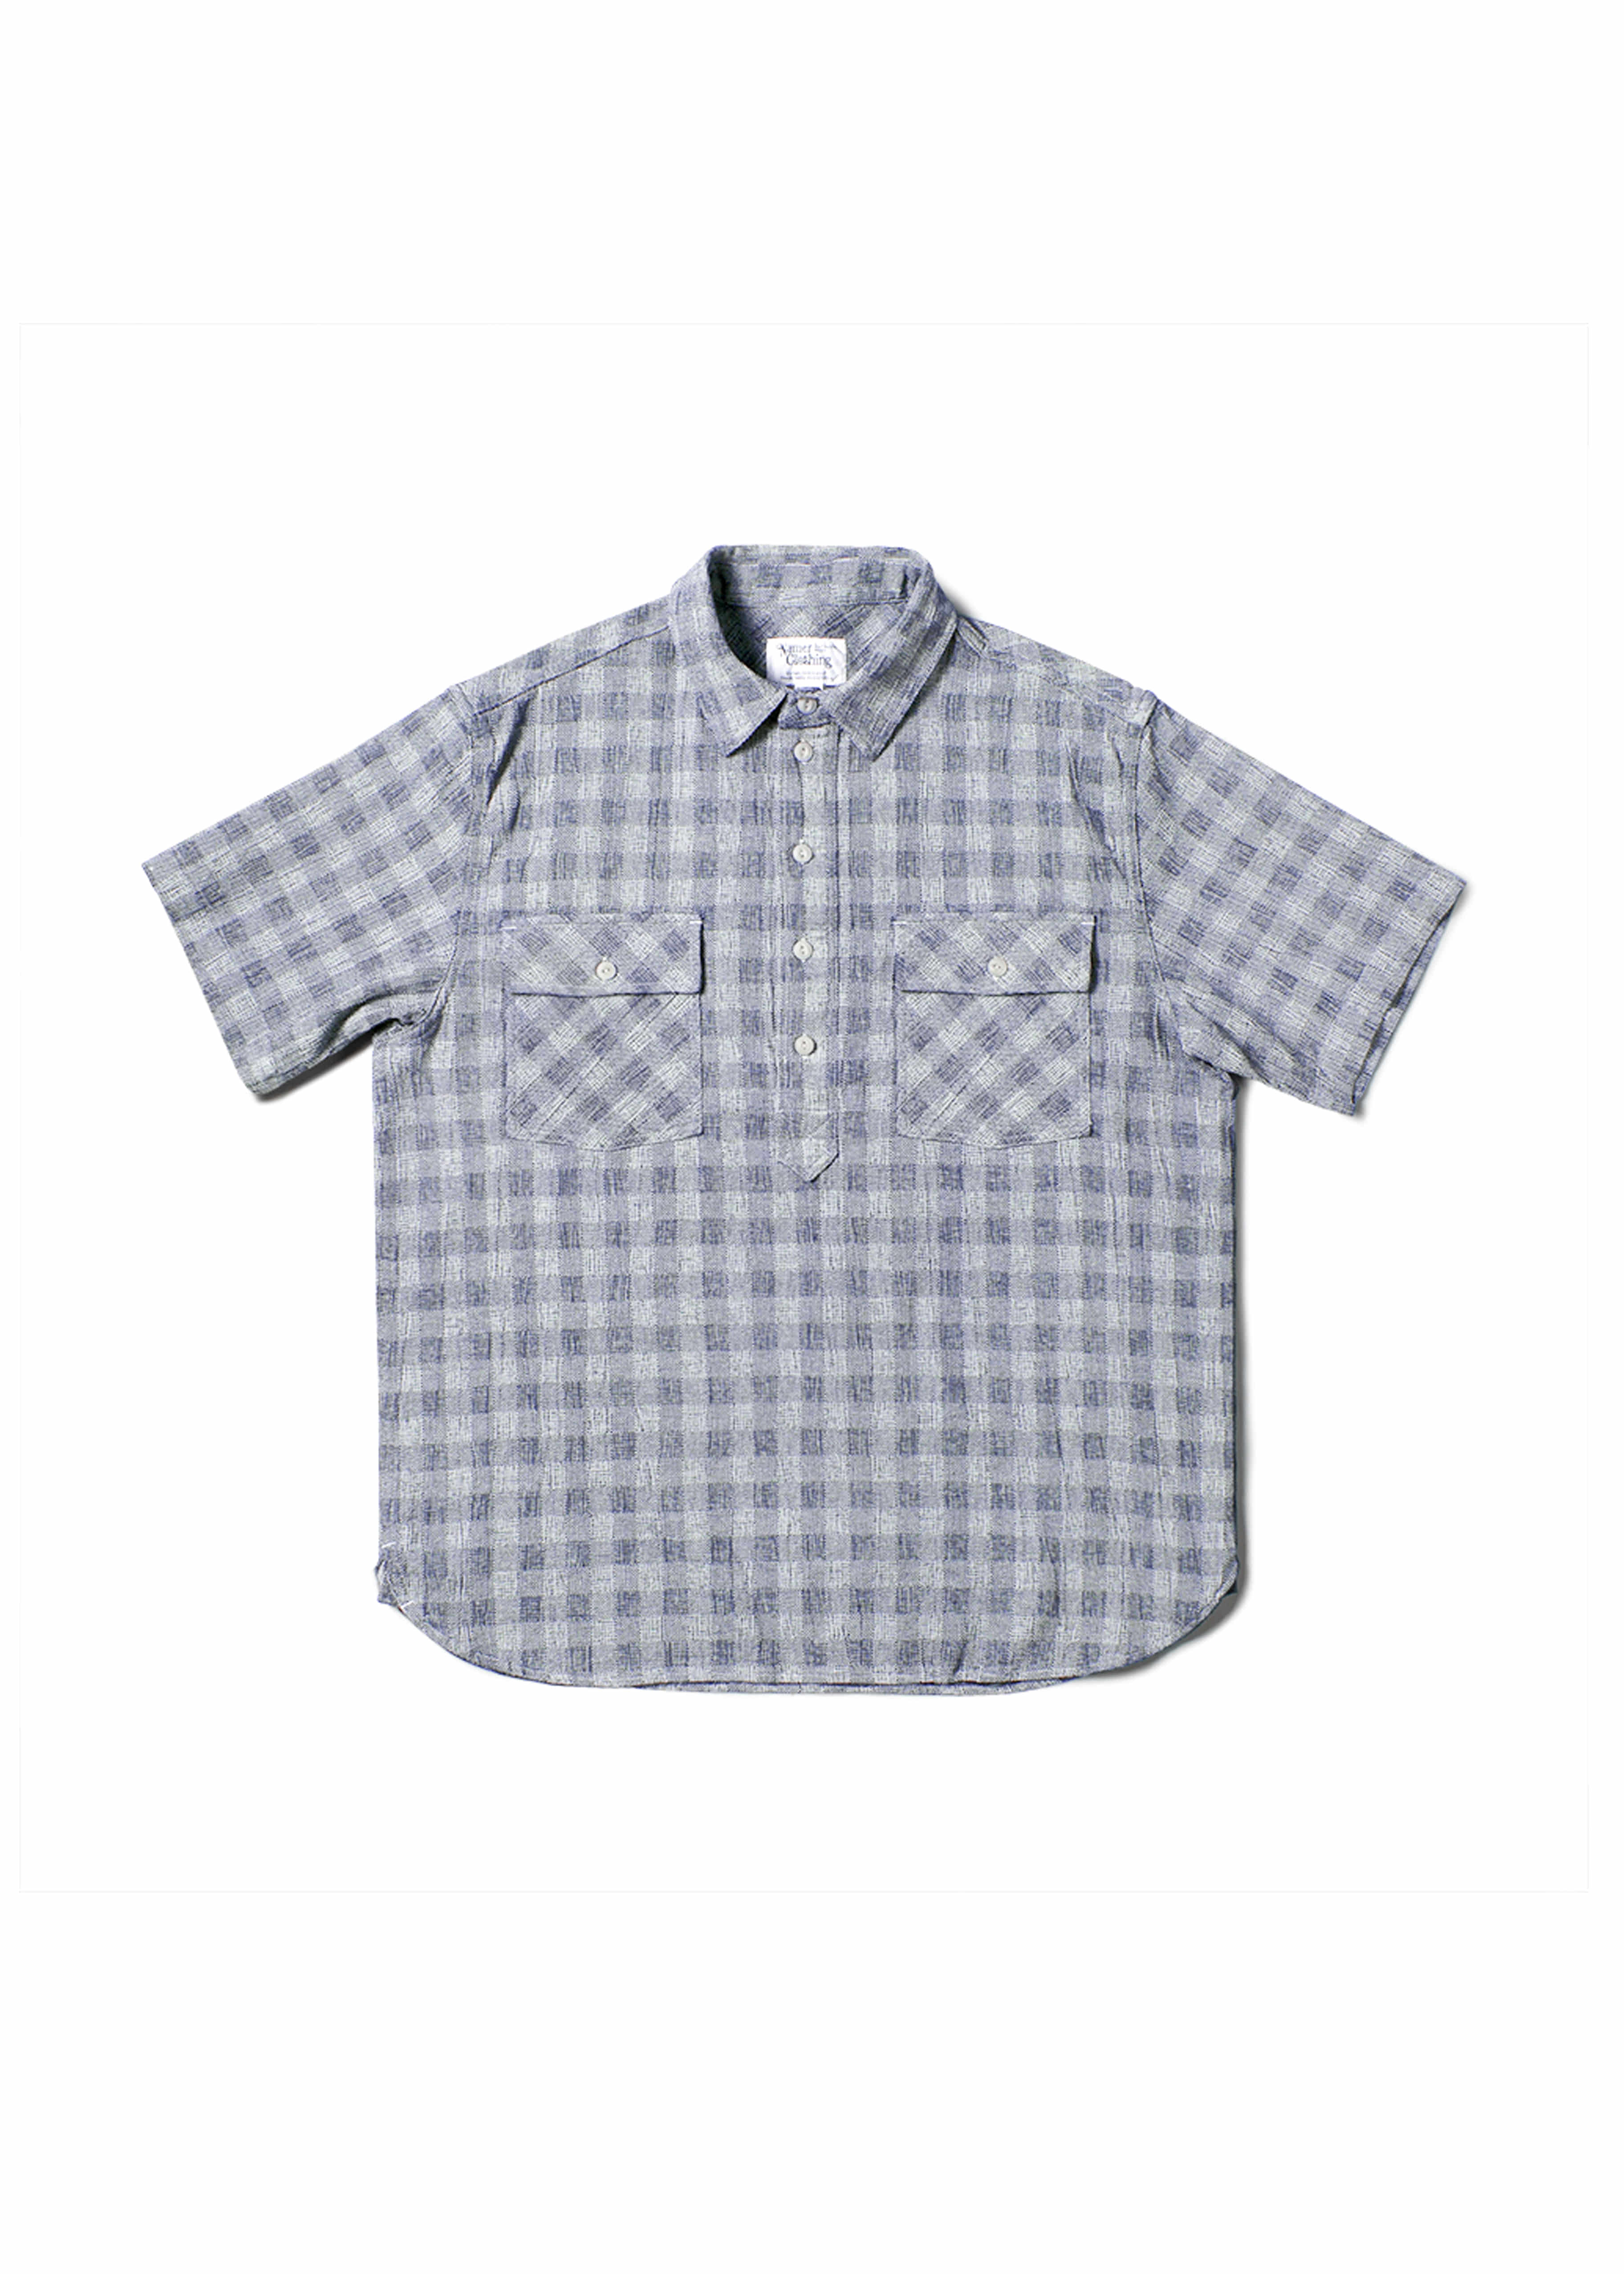 네이머클로딩 BLUER CHECK PULLOVER 1/2 SHIRTS_Navy